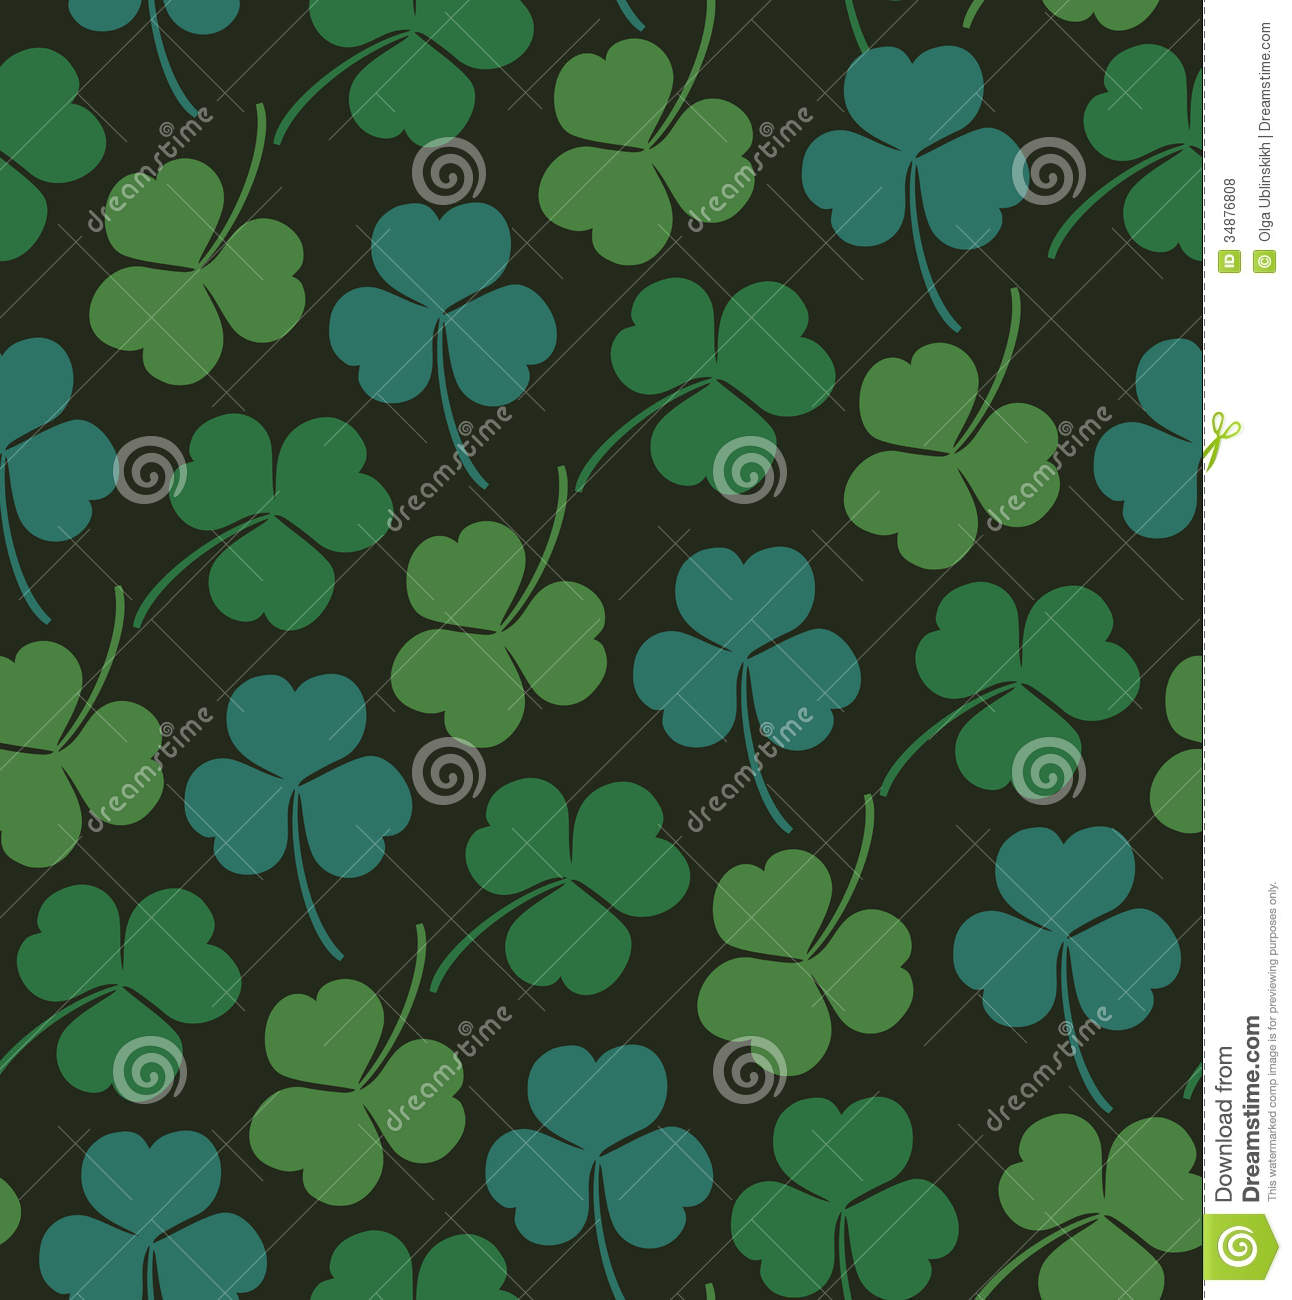 shamrock pattern wallpaper 1366x768 - photo #8